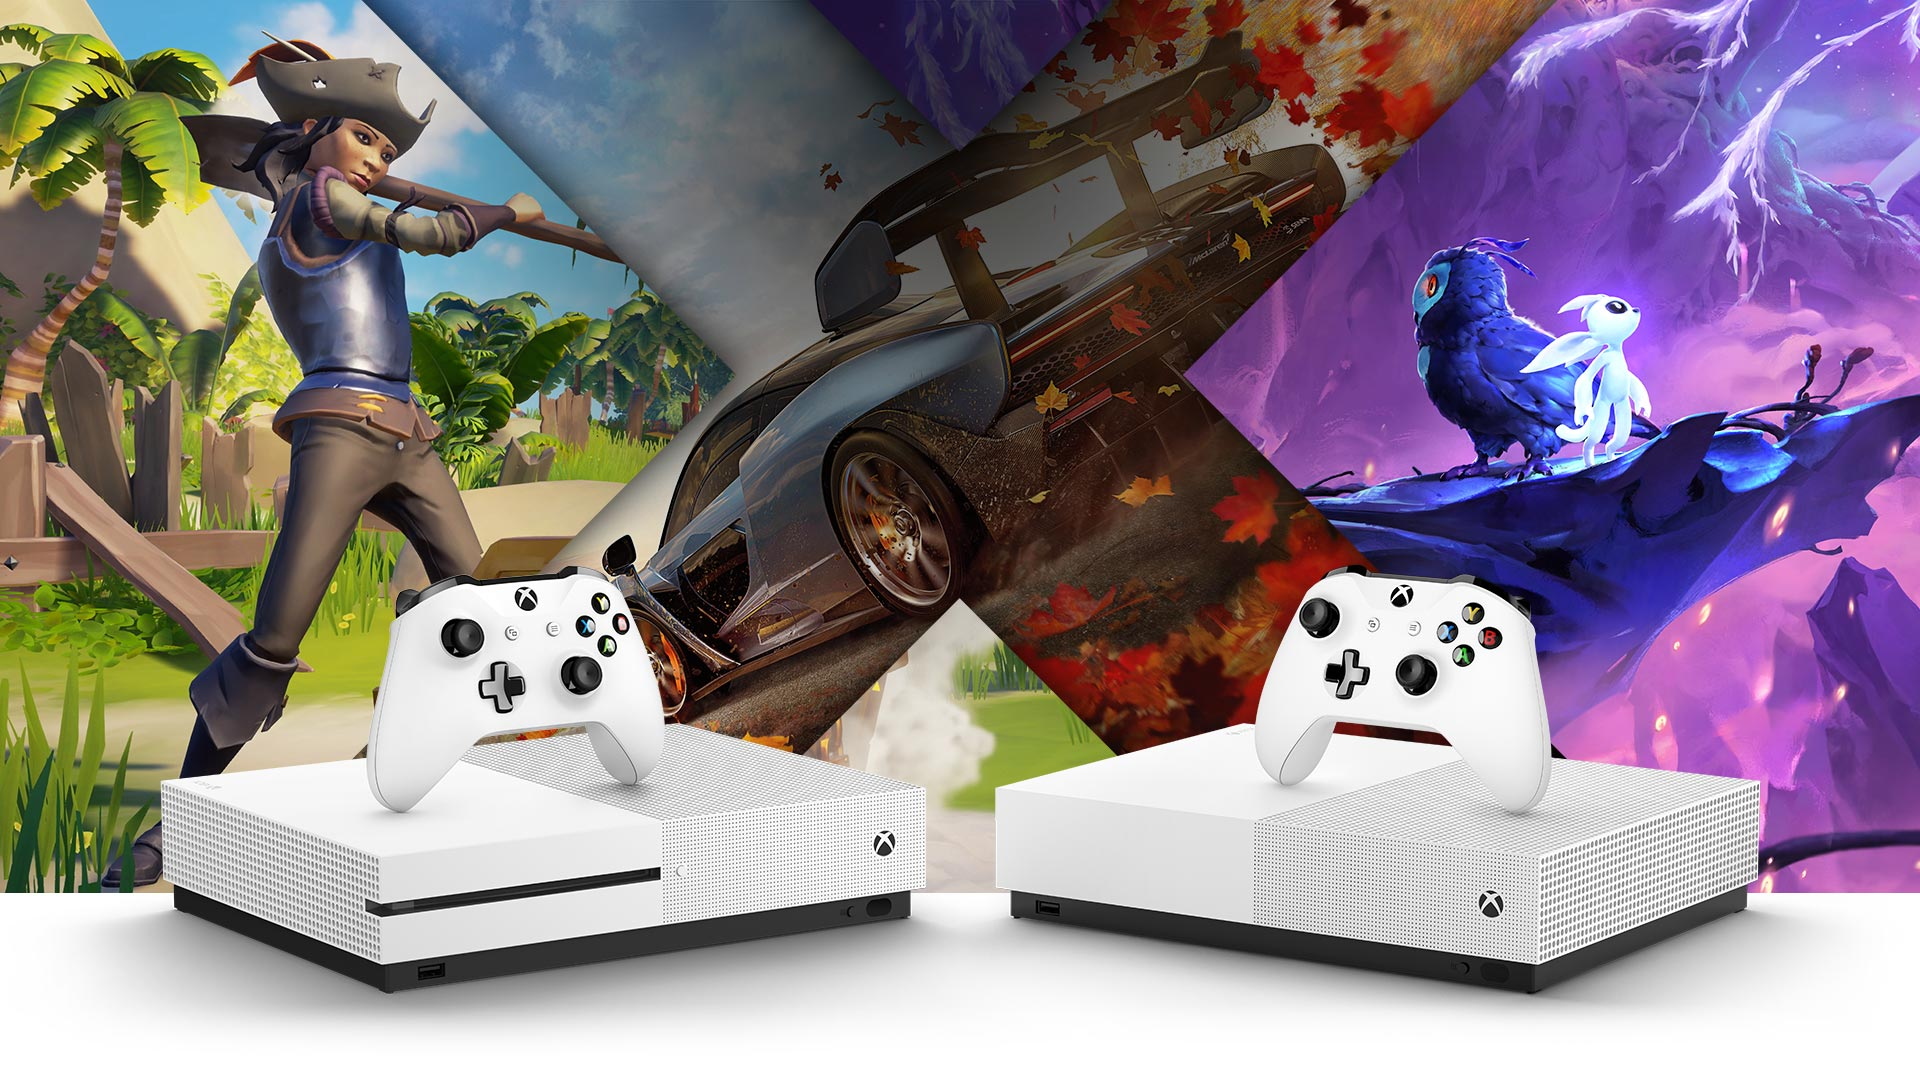 Vooraanzicht van de Xbox One S en Xbox One S All Digital Edition met daaromheen illustraties van Sea of Thieves, Forza Horizon 4, en Ori and the Will of Wisps